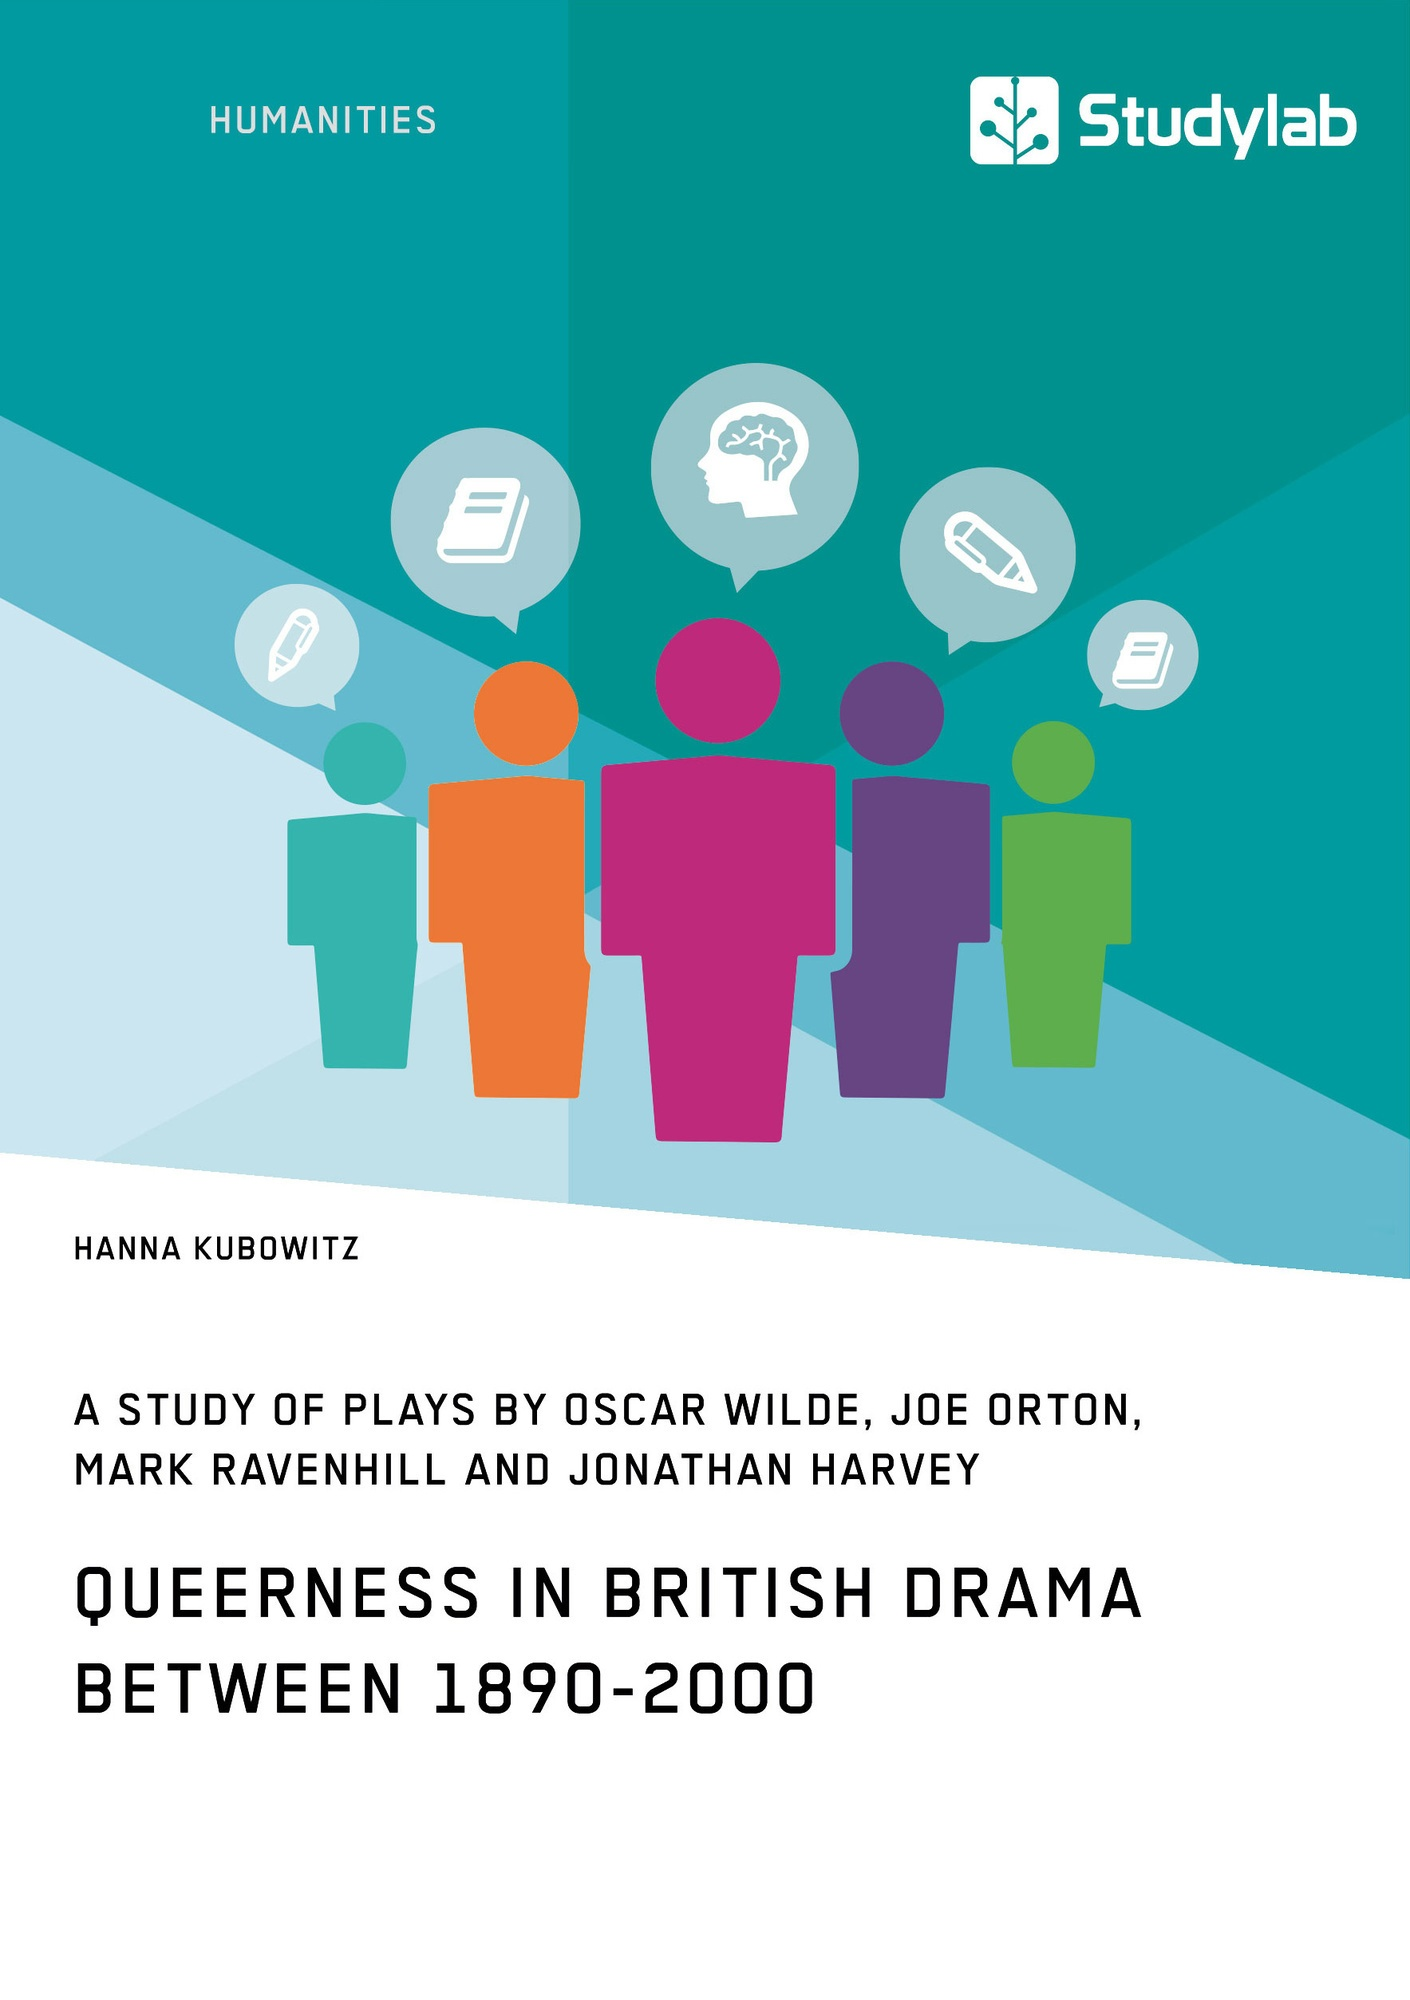 Title: Queerness in British Drama between 1890-2000